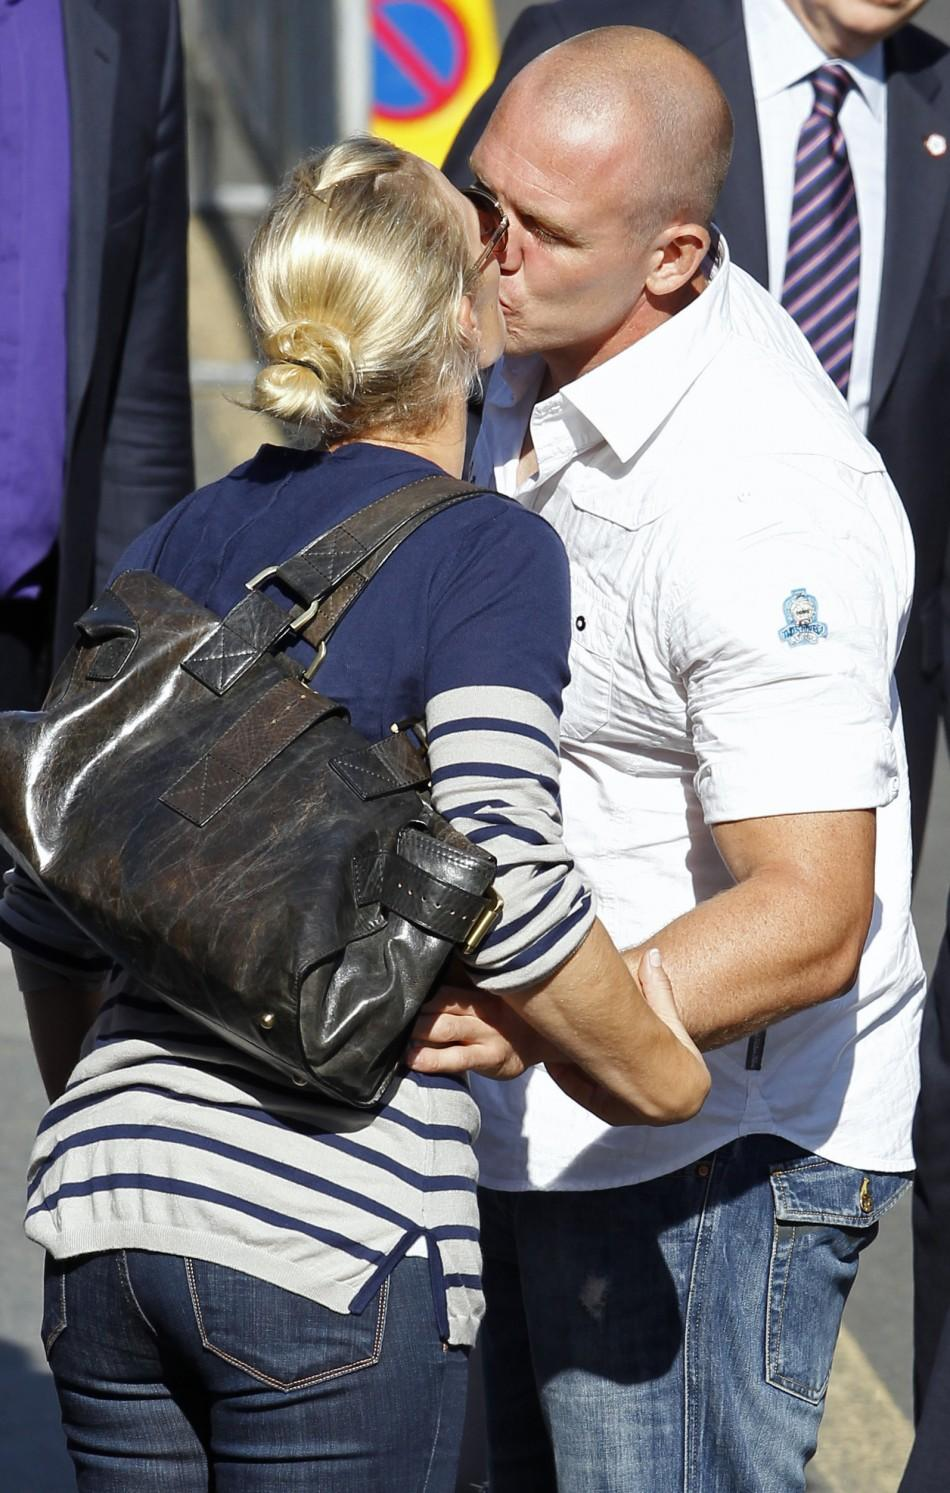 Britain's Zara Phillips, the eldest granddaughter of Queen Elizabeth, and England rugby captain Mike Tindall, kiss after their wedding rehearsal at Canongate Kirk in Edinburgh, Scotland